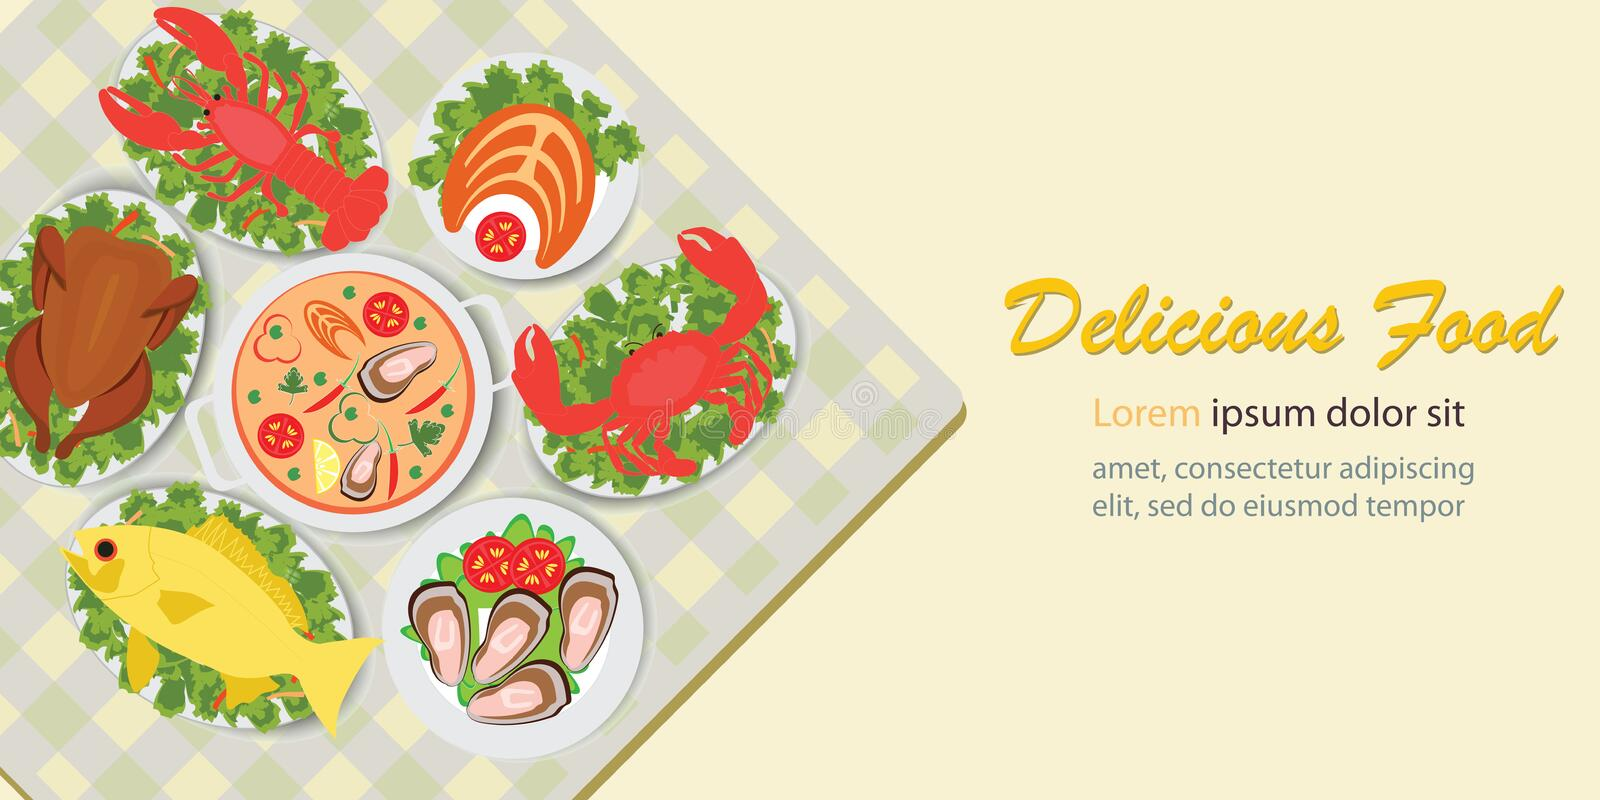 Delicious food lunch menu with chicken salad and seafood royalty free illustration